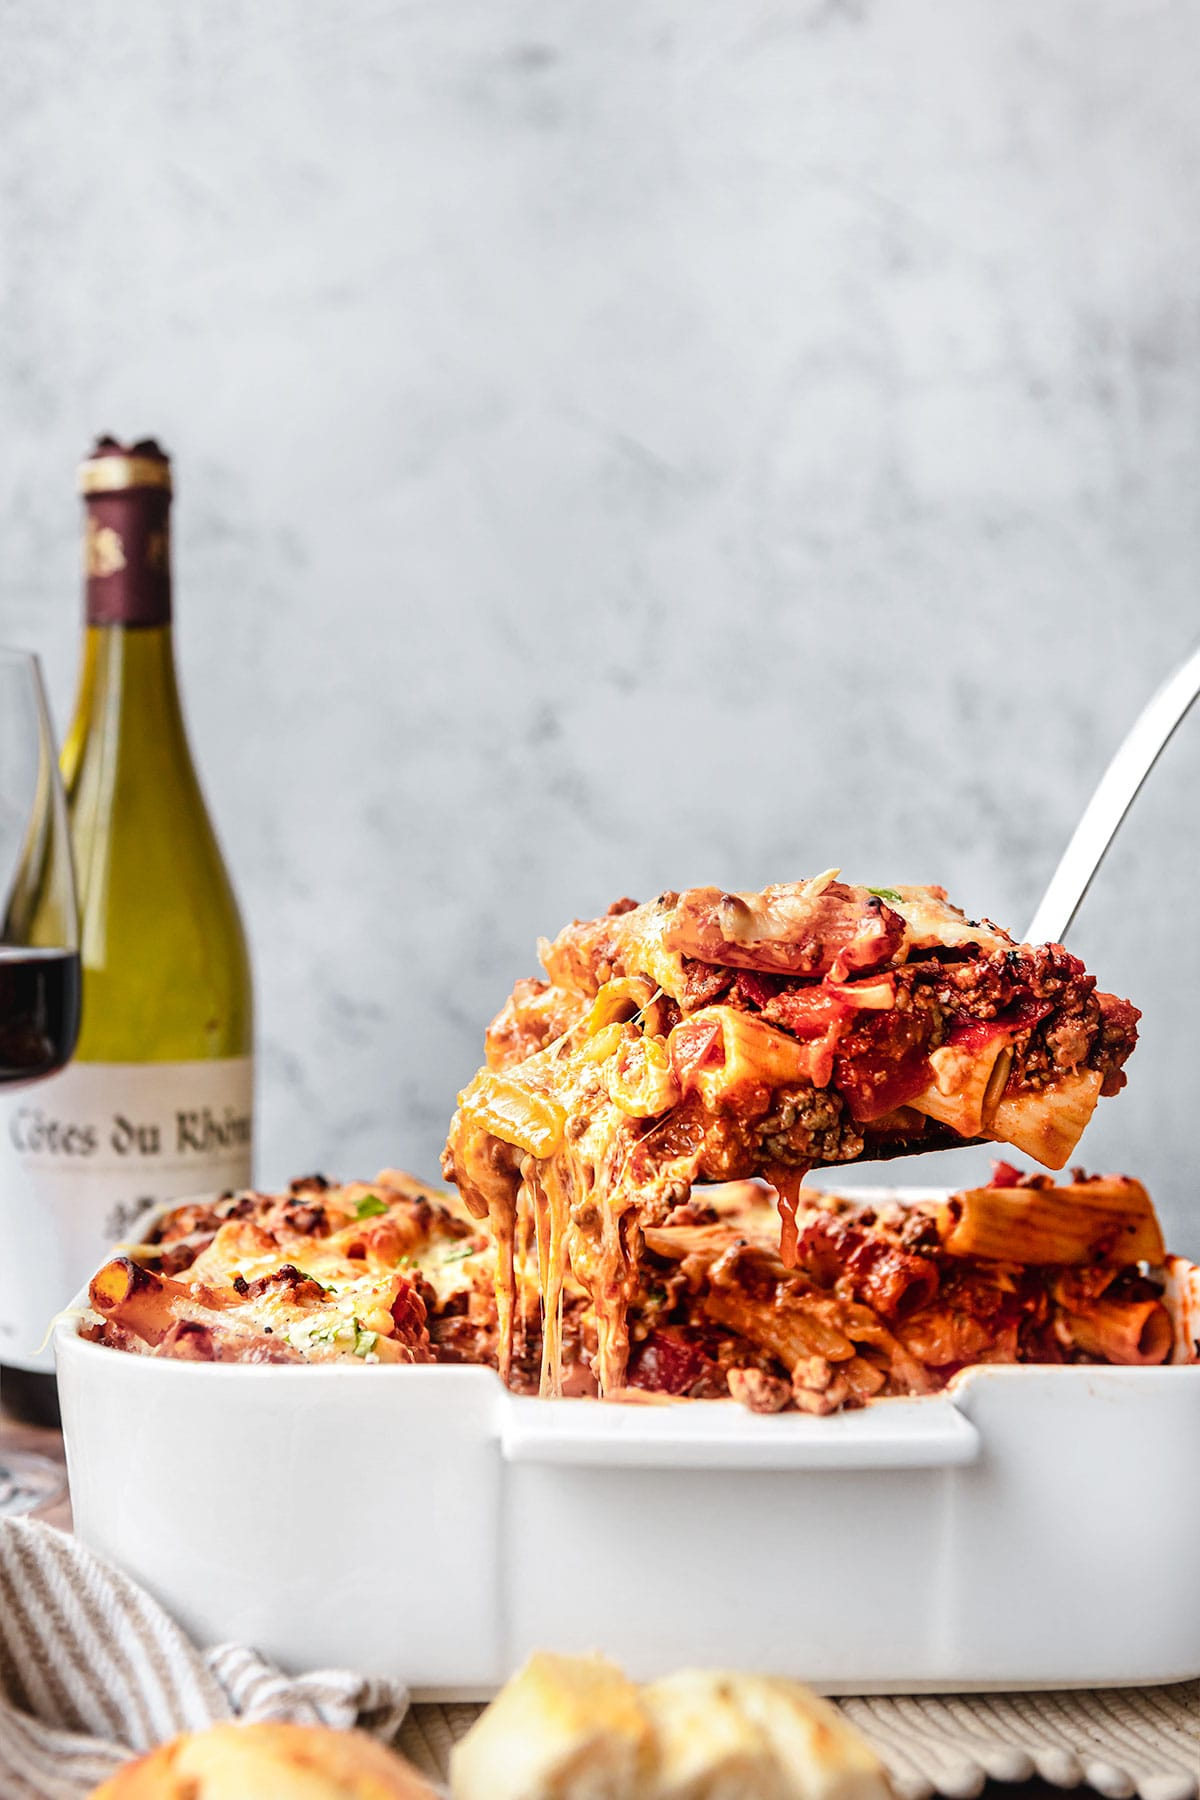 Cheesy Beef Pasta Bake in baking dish with spatula lifting piece out